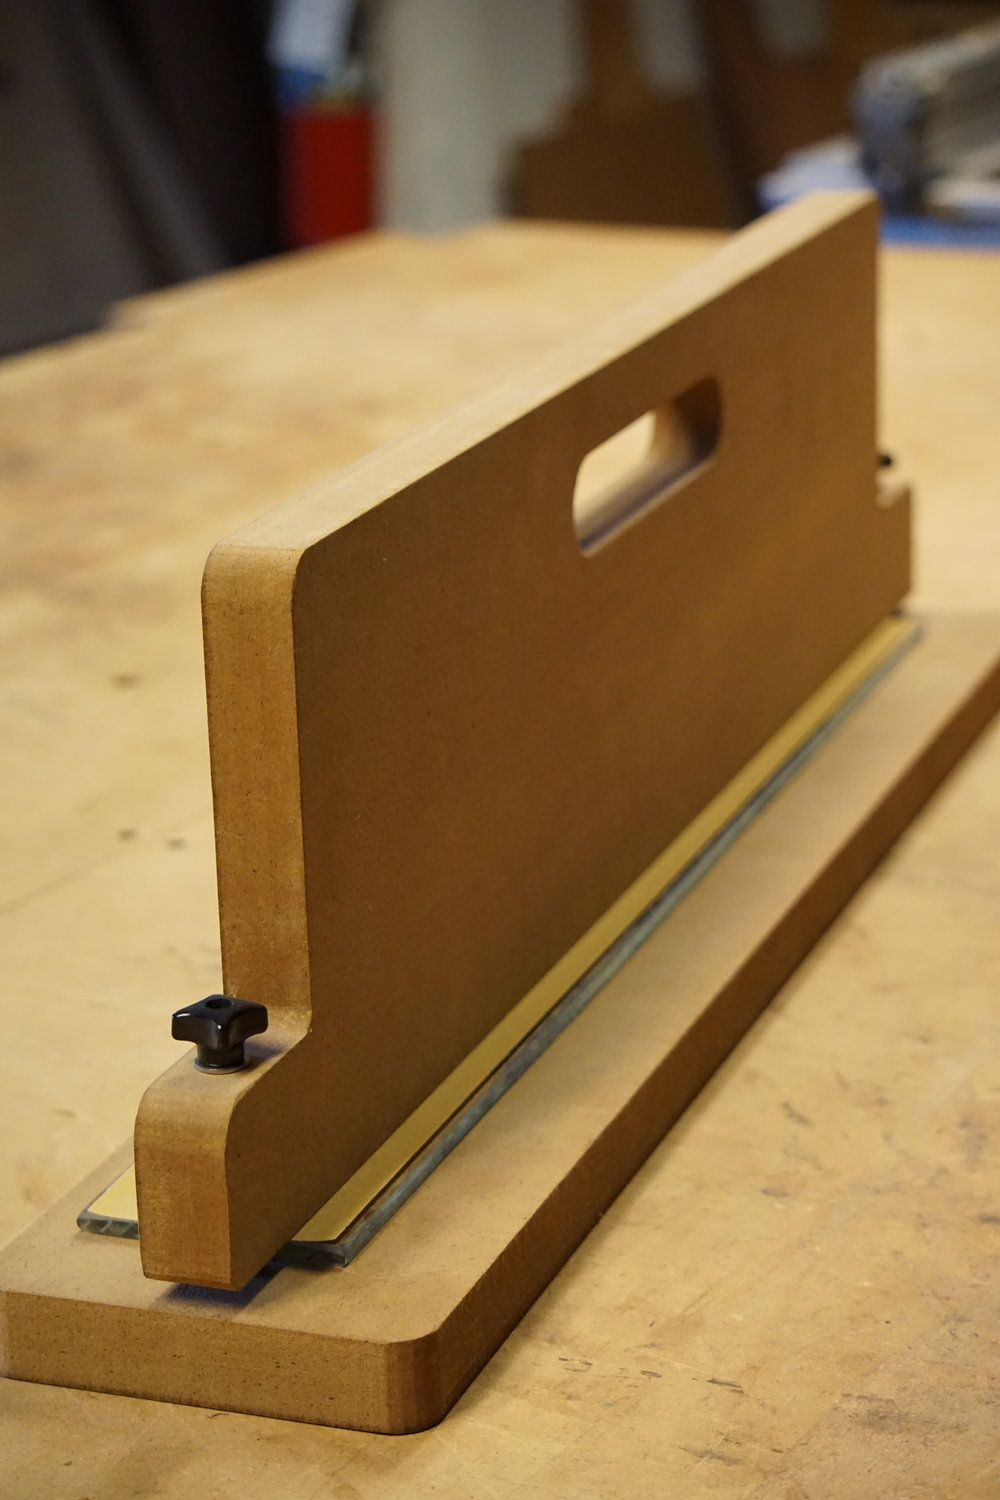 The Easy Jointer -